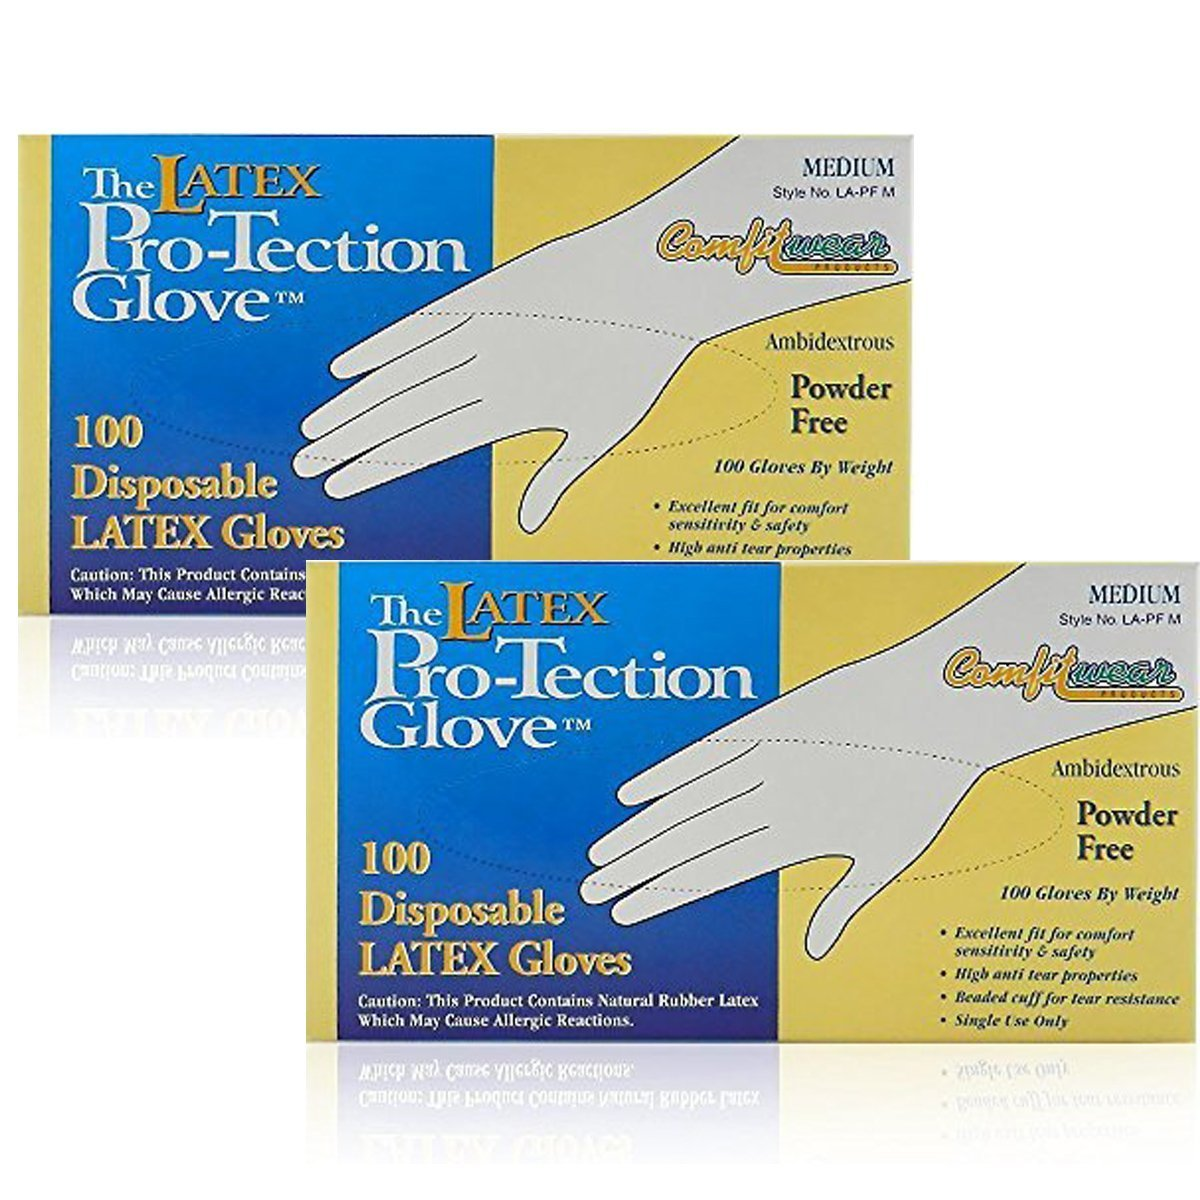 Comfitwear Disposable Latex Gloves, Powder Free, Medium, 200 Gloves (2 Boxes of